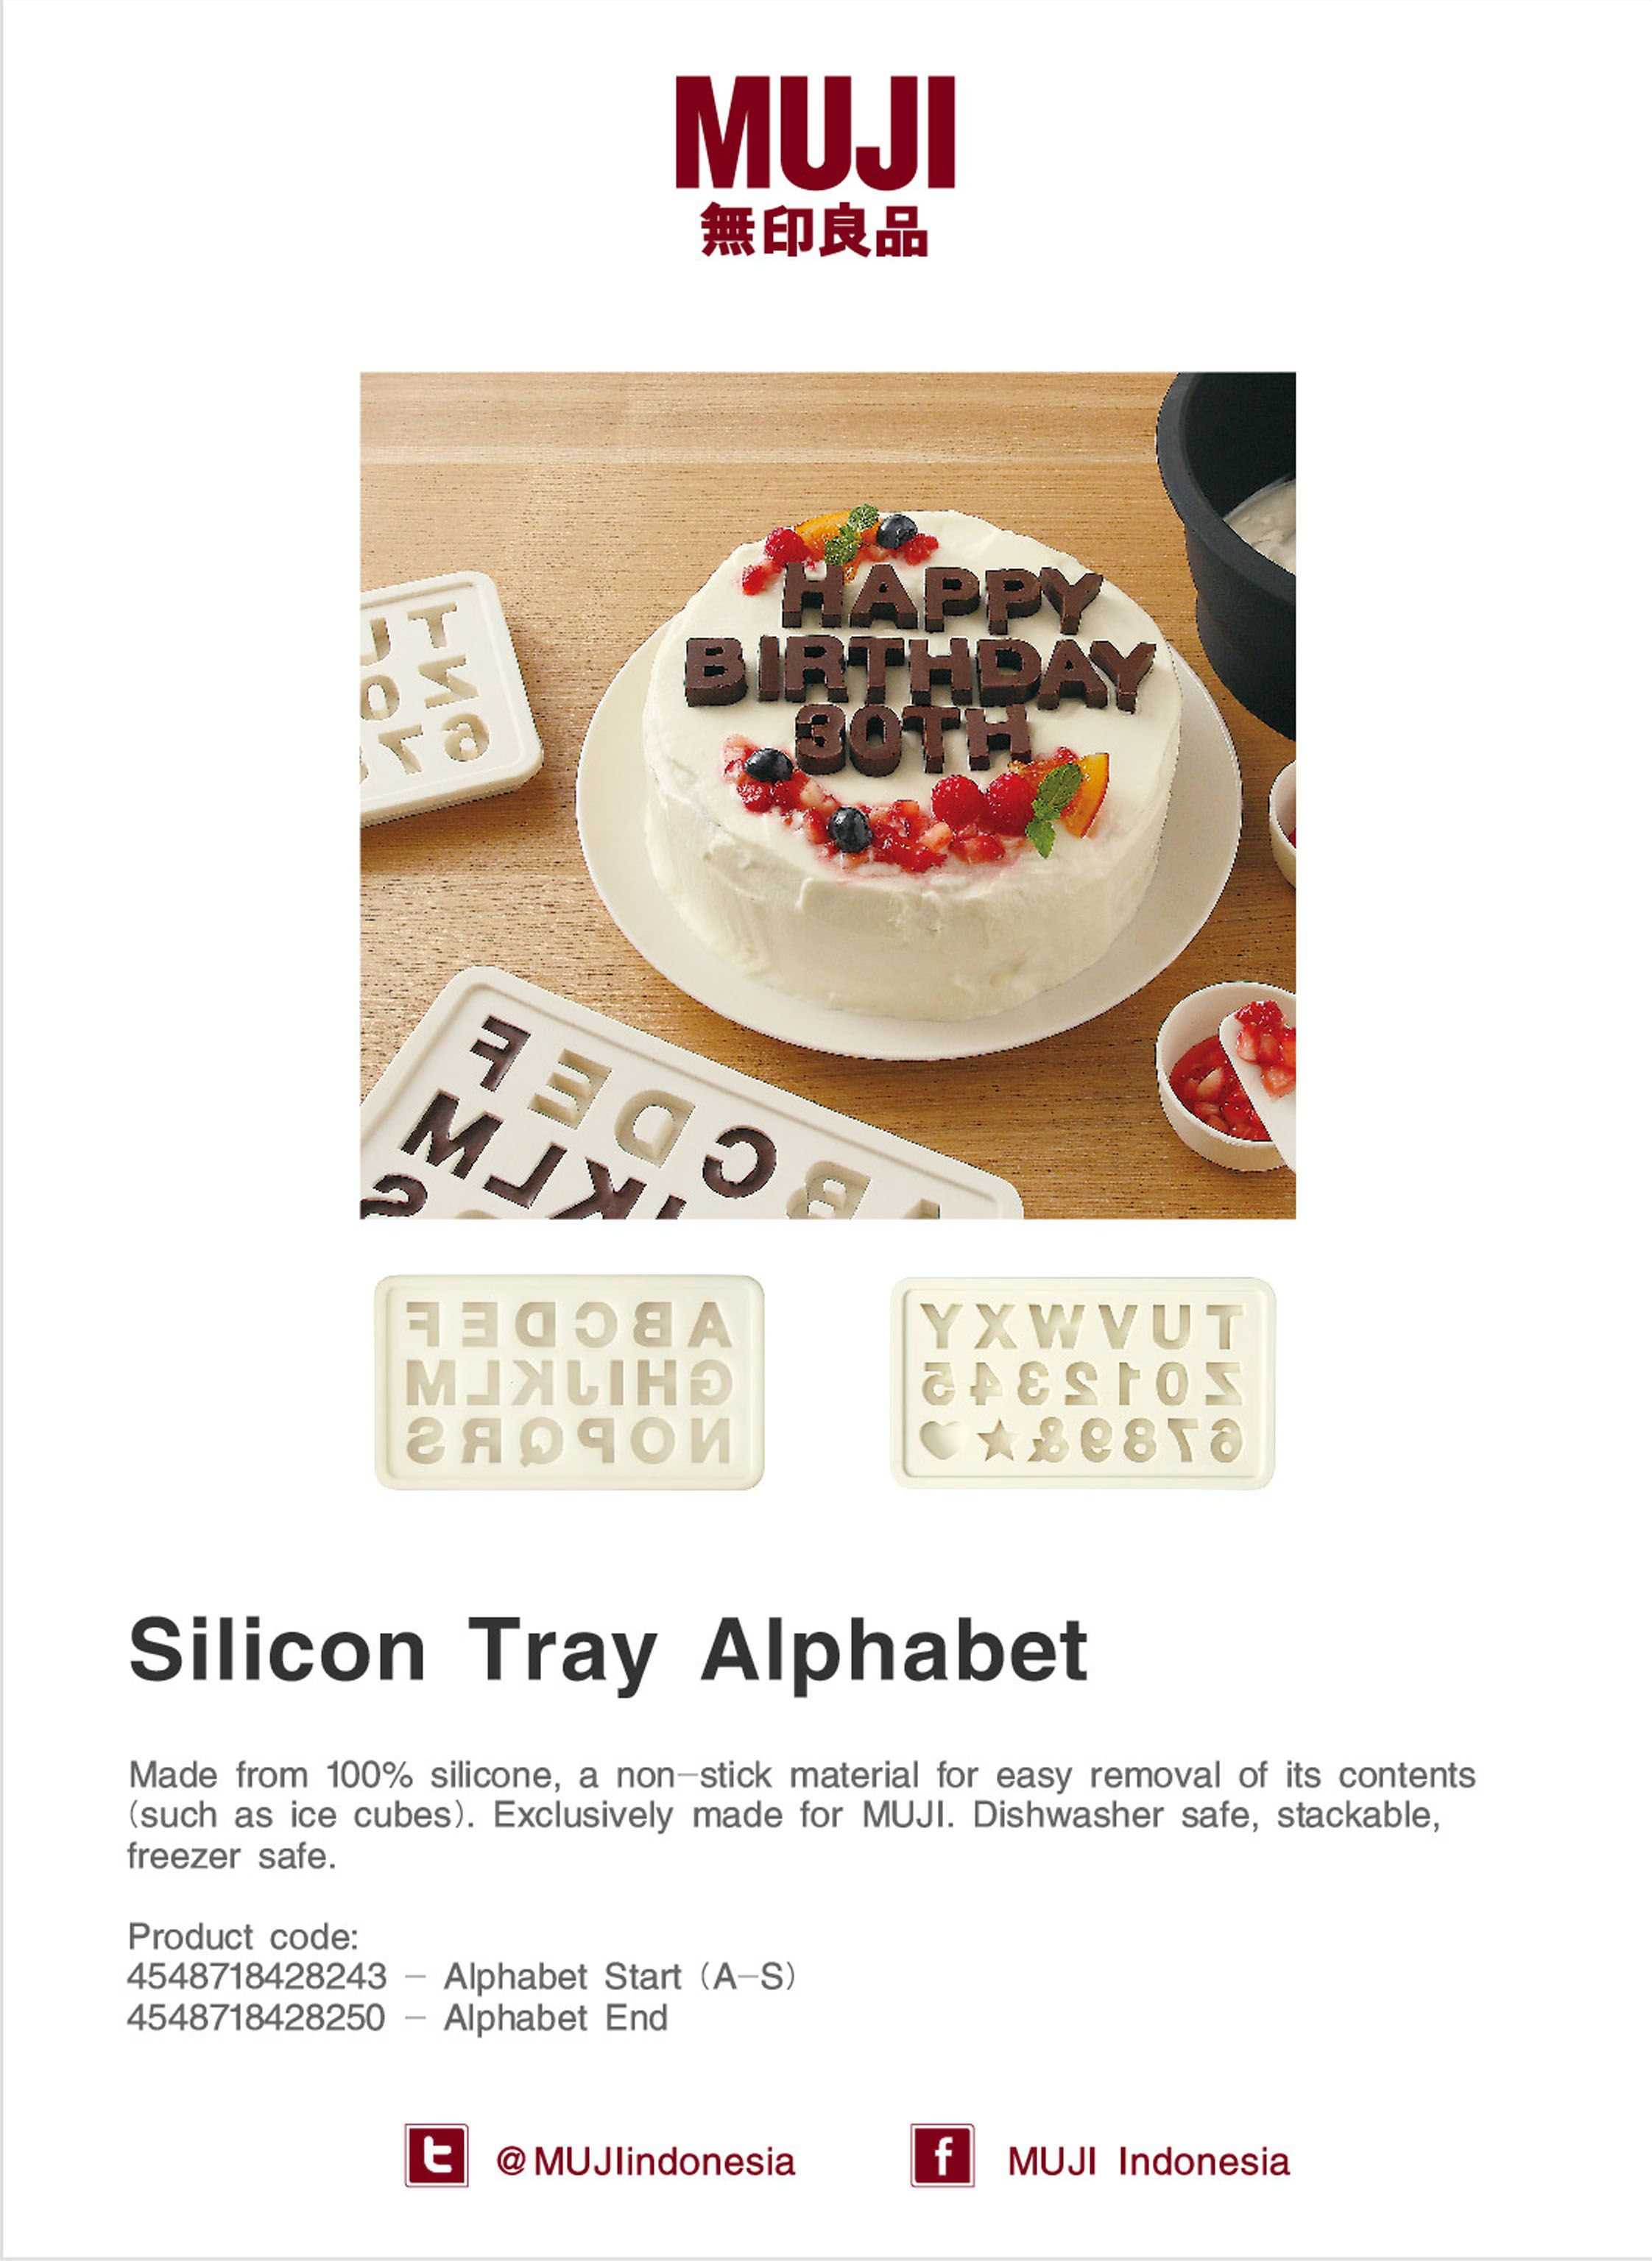 [Silicon Tray Alphabet] a non-stick material for easy removal of its contents. Dishwasher & freezer safe, stack-able.